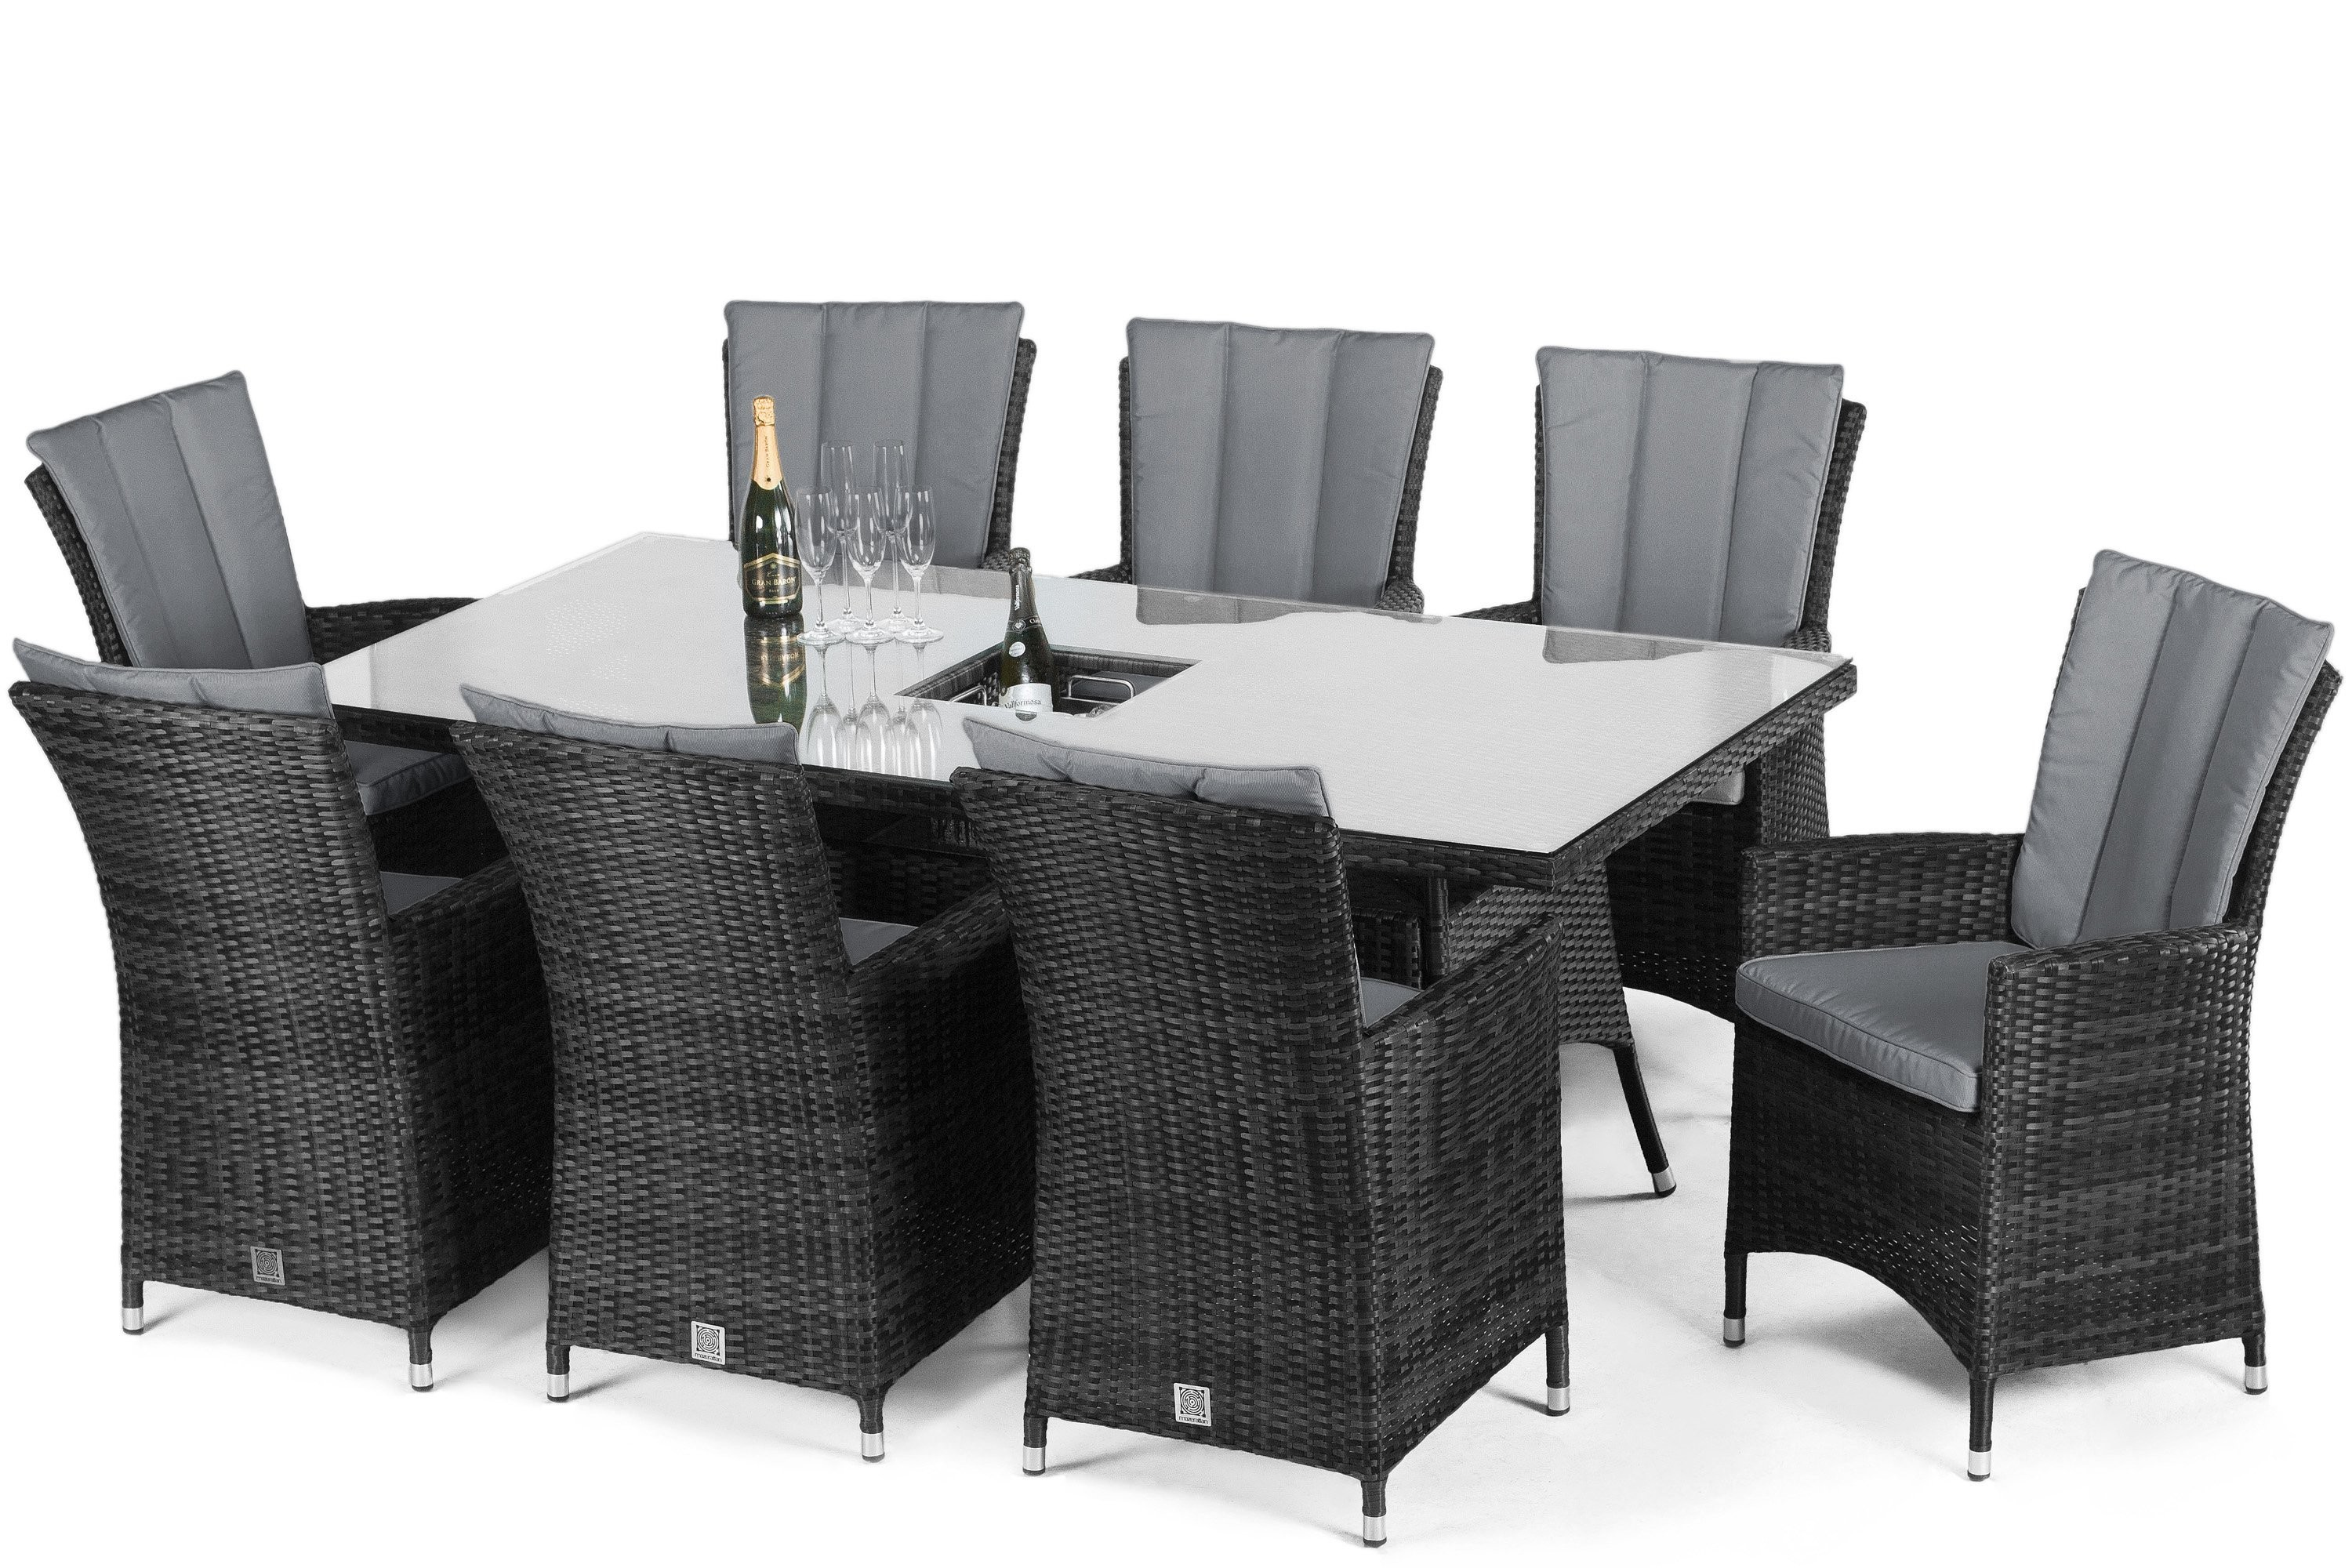 Maze Rattan LA 8 seat Rectangular garden furniture Set | Rattan Furniture Fairy